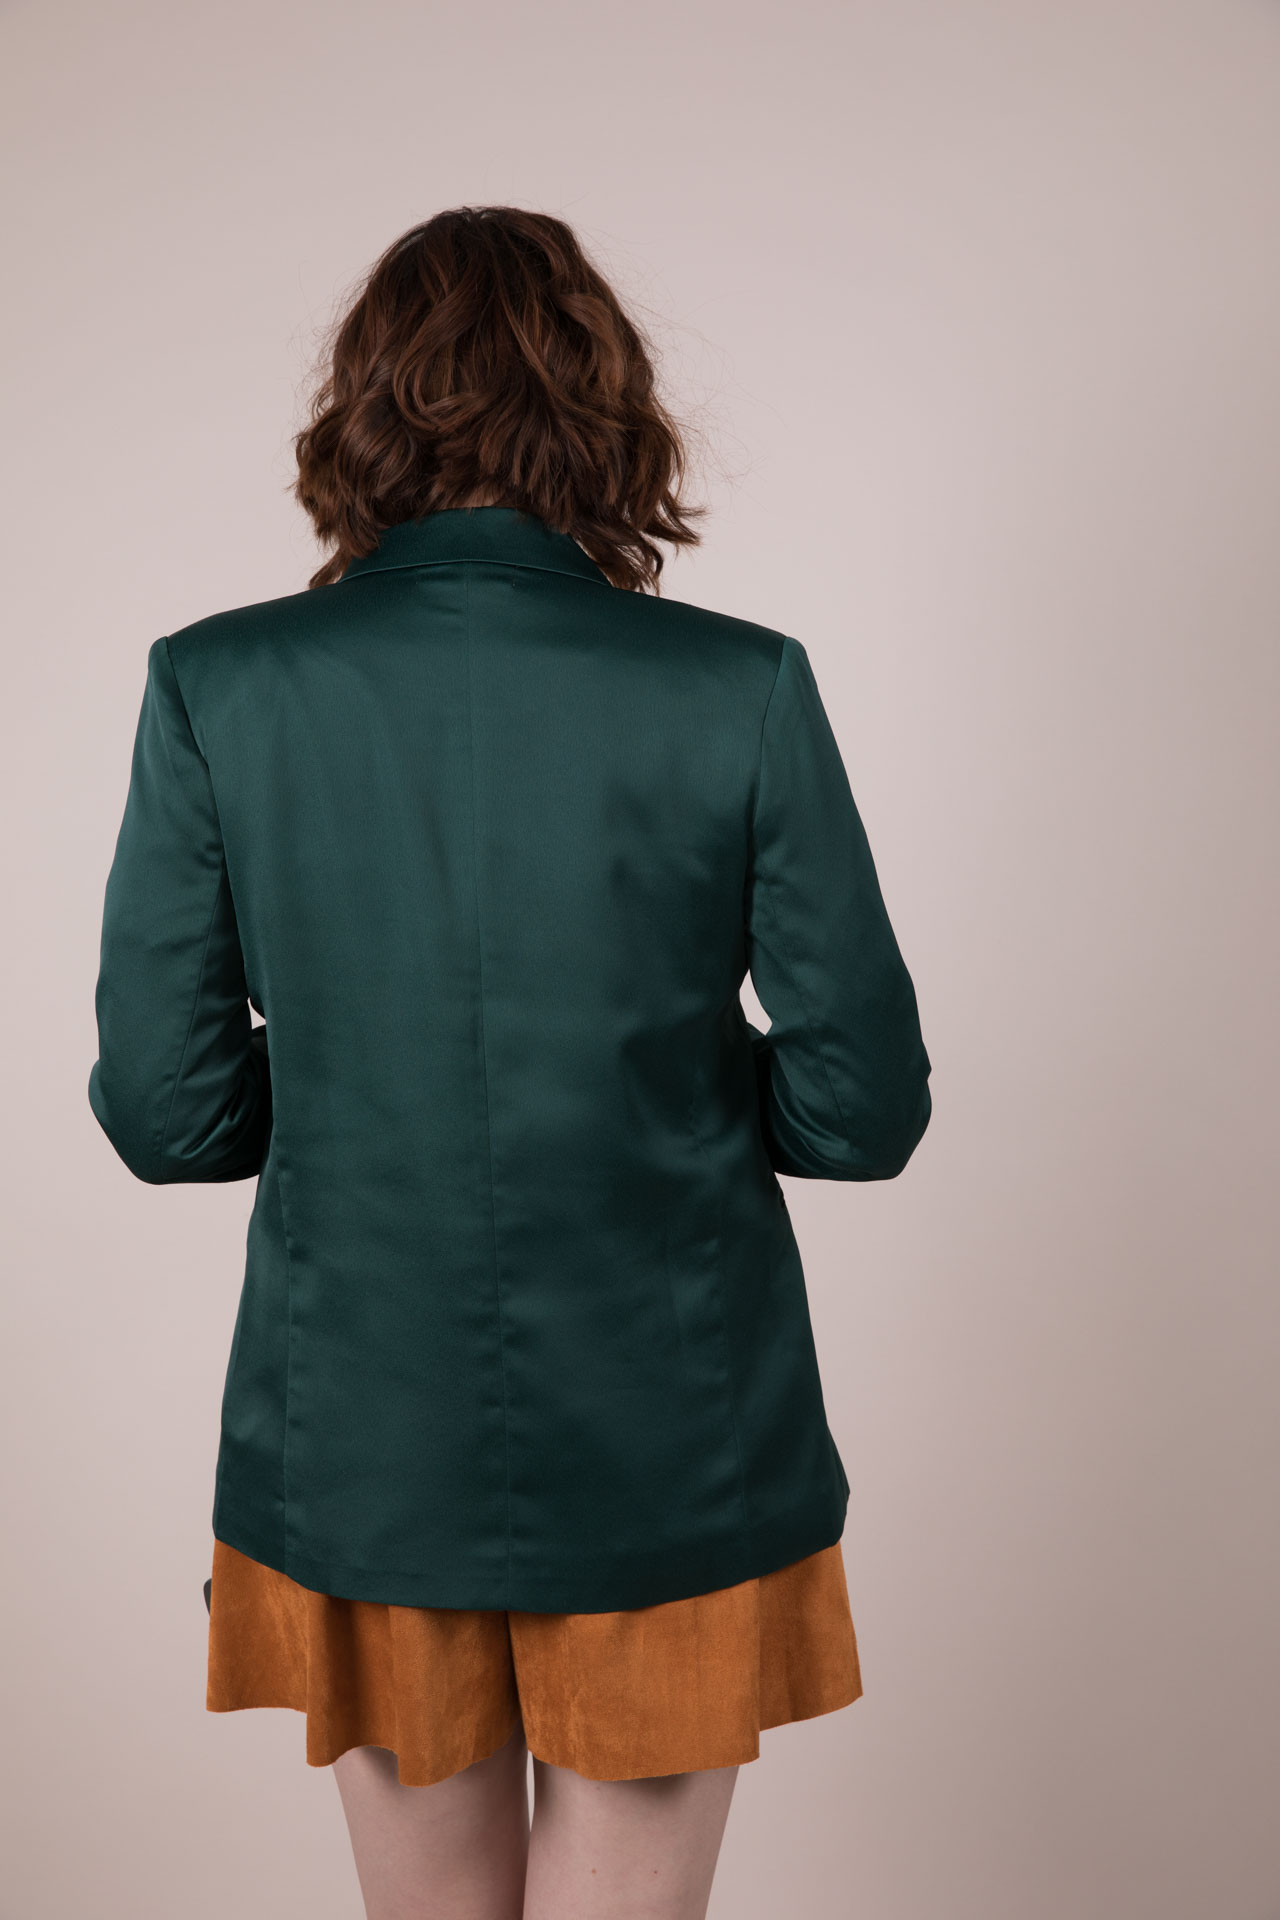 Hunter Jane Blazer - Dark Green Silk LayerJ2230